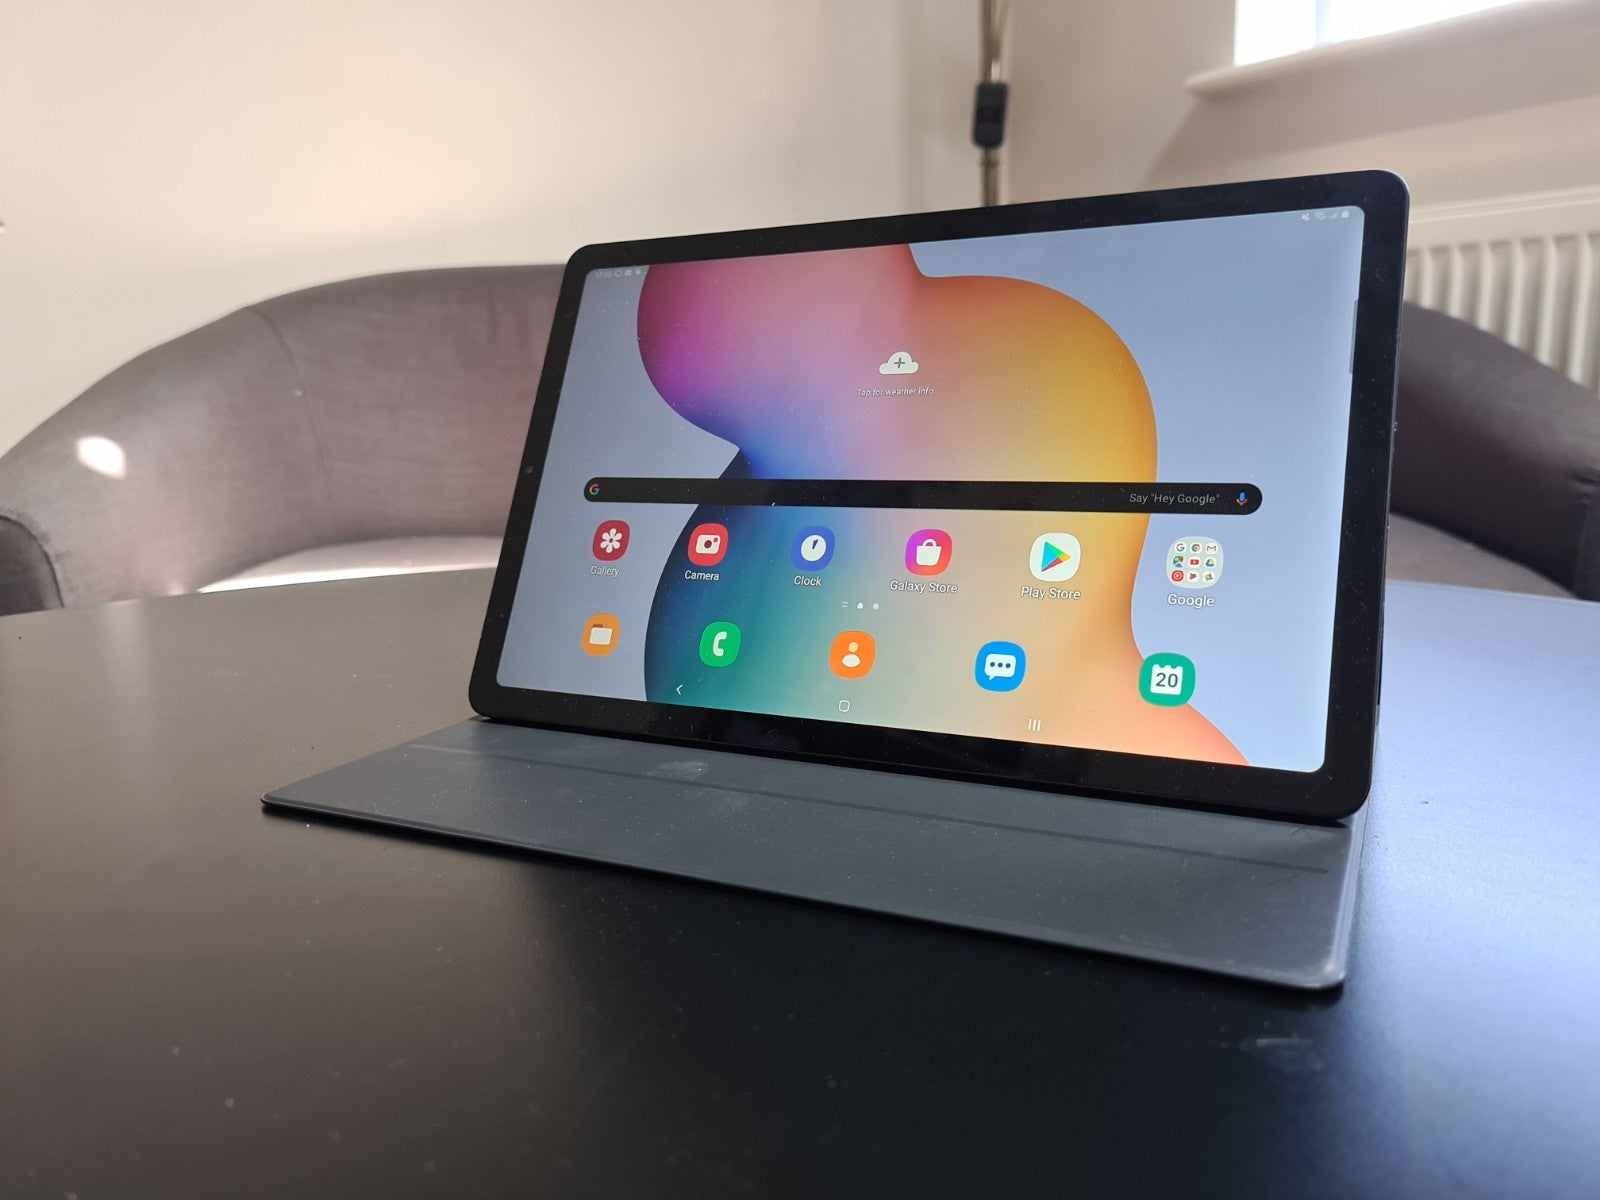 Samsung Galaxy Tab S6 Lite Review Trusted Reviews